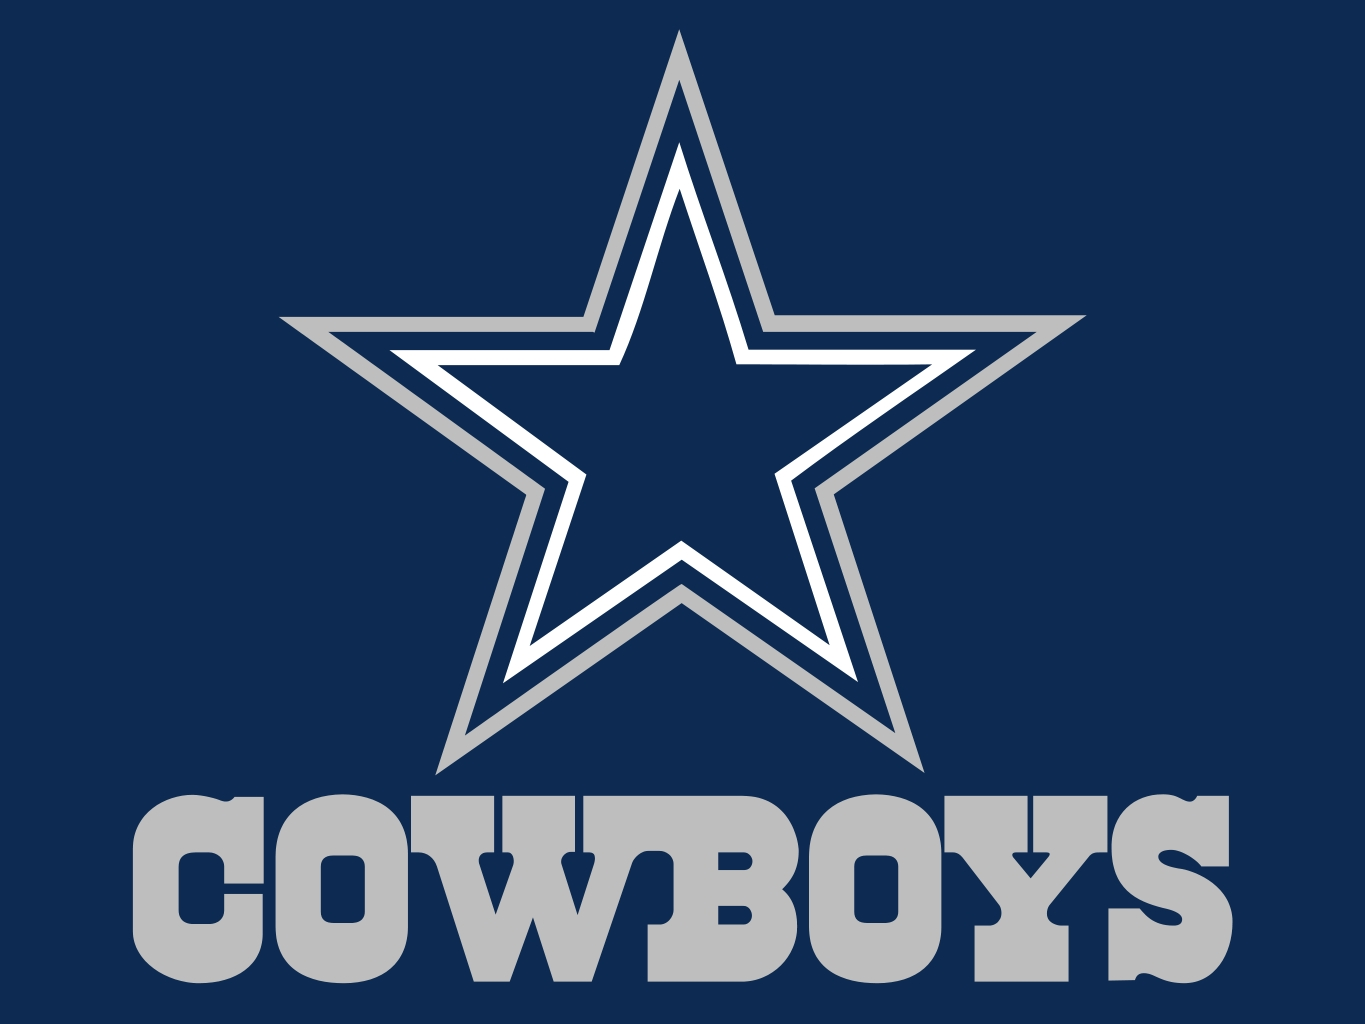 nfl teams dallas cowboys collins flags blog rh collinsflags com  dallas cowboys helmet logo vector